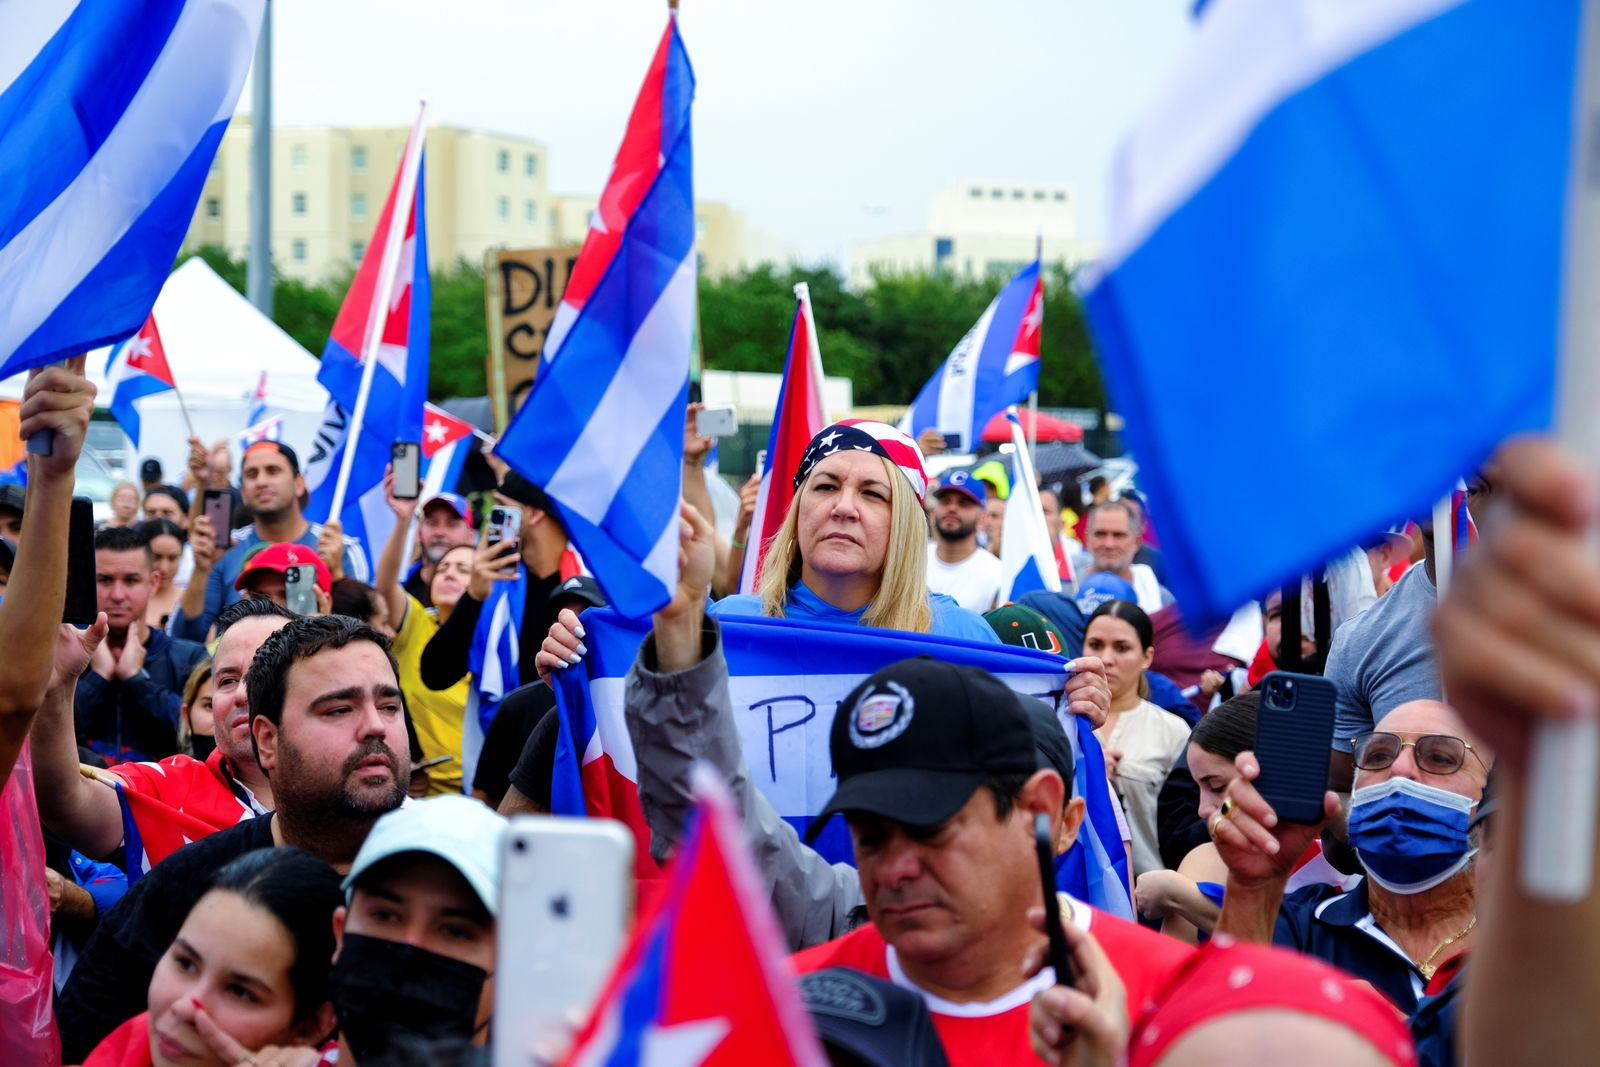 Emigres in the Little Havana neighborhood gather following reports of protests in Cuba against its deteriorating economy, in Miami